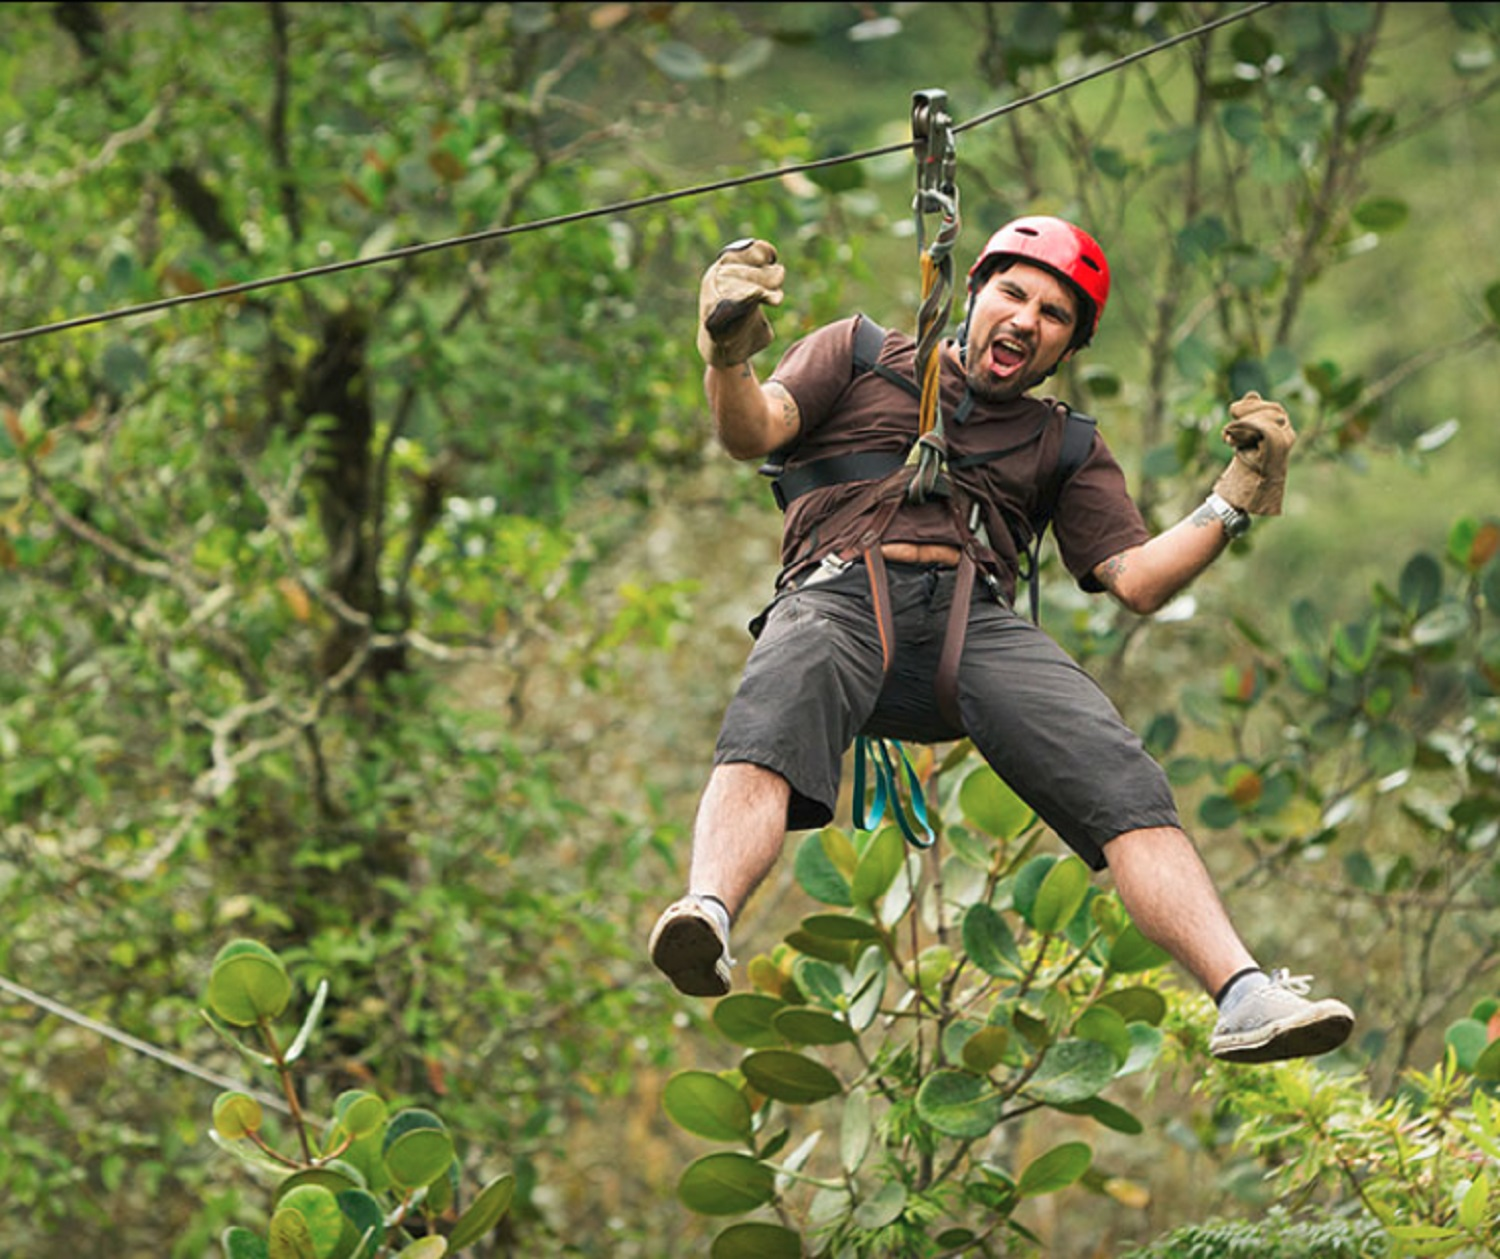 excited guy ziplining through woods